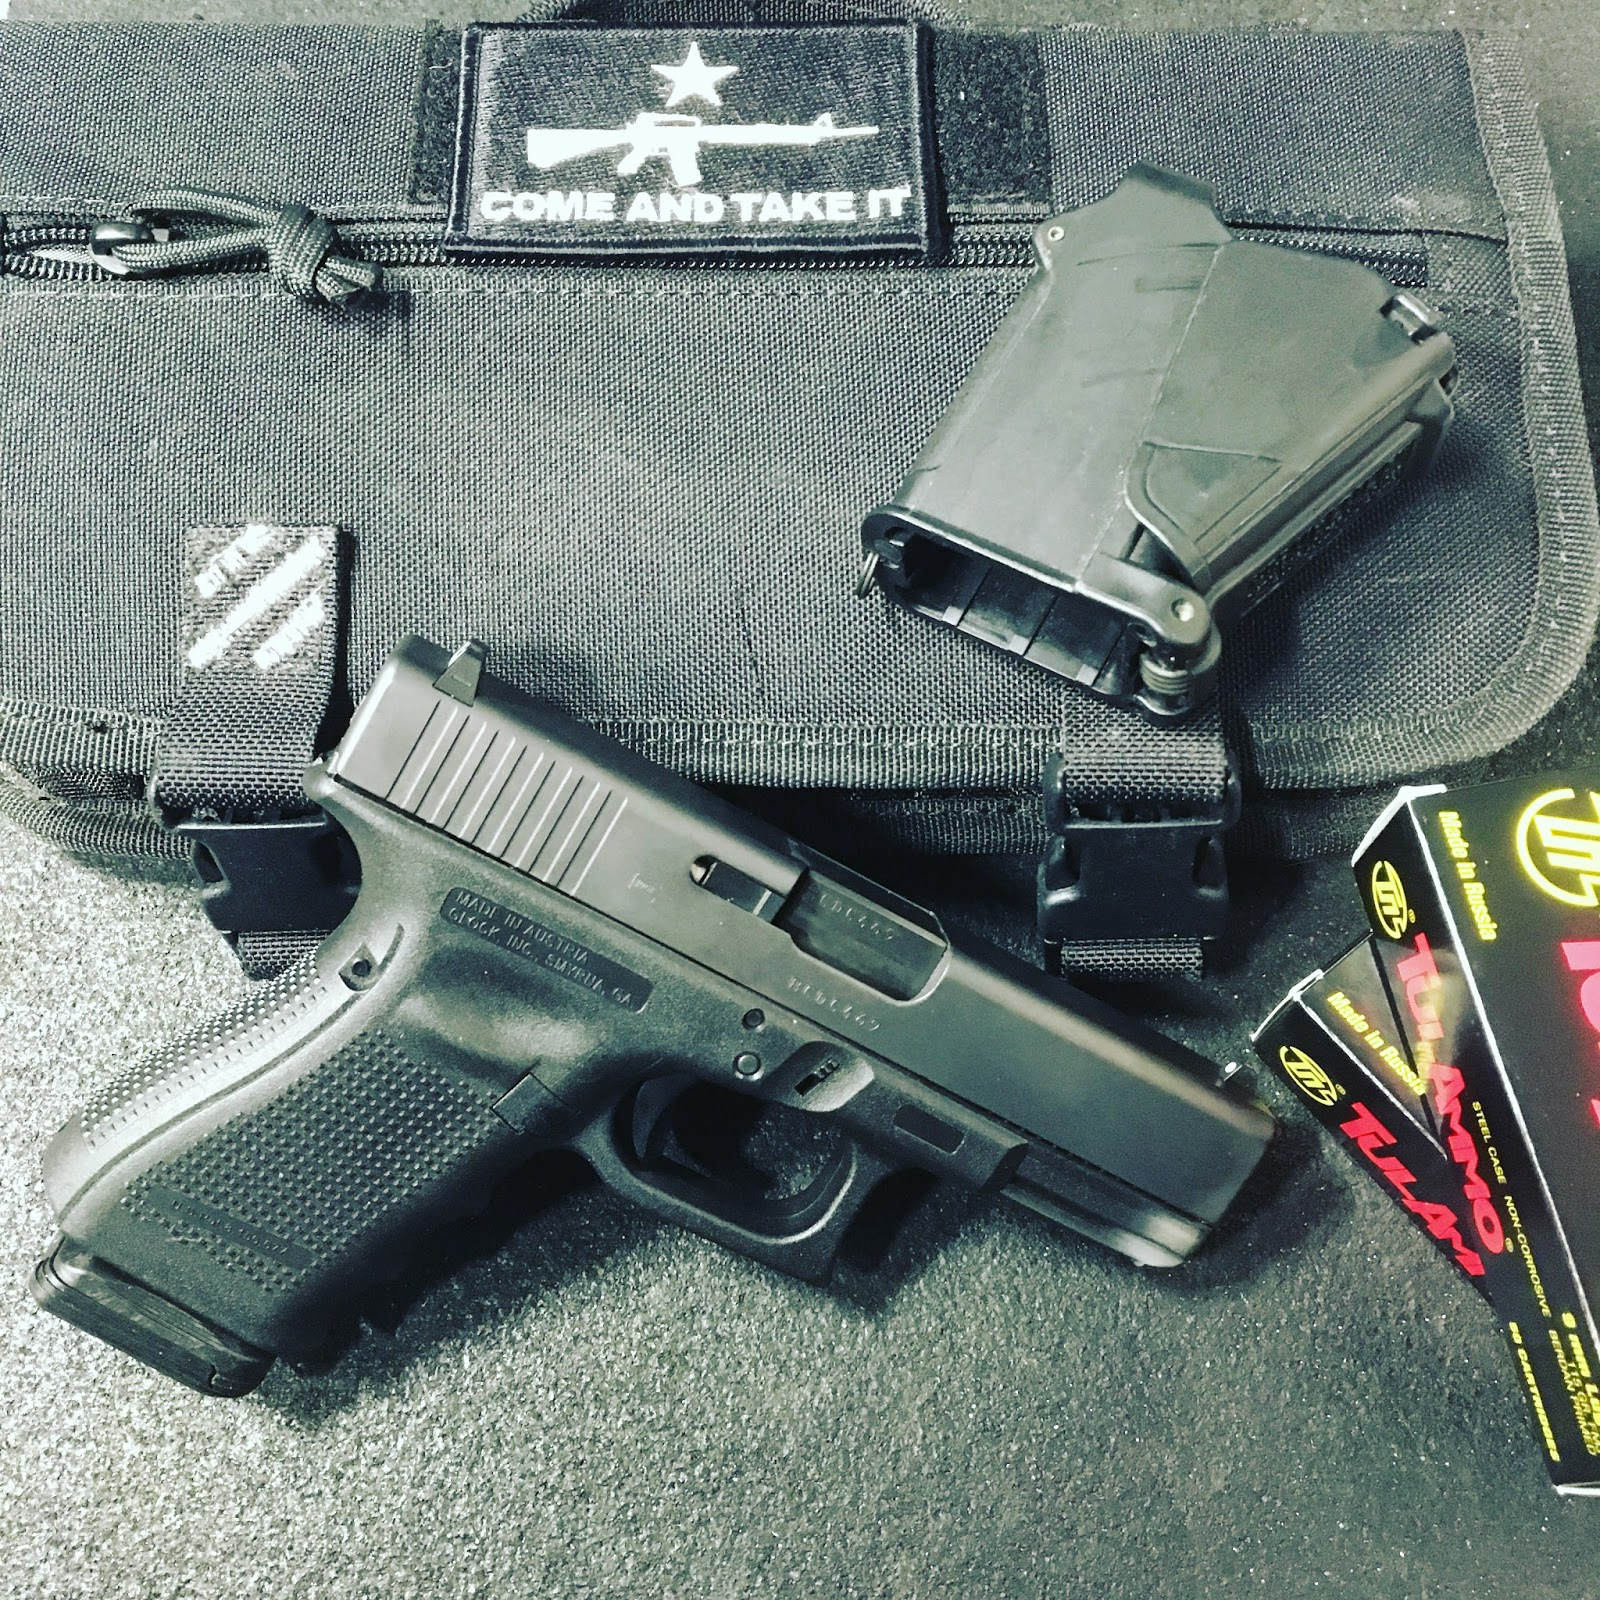 Yesterday morning dawned with a case of tulammo 115gr fmj being dropped off on the front porch the gen4 19 had already seen five hundred and fifty rounds